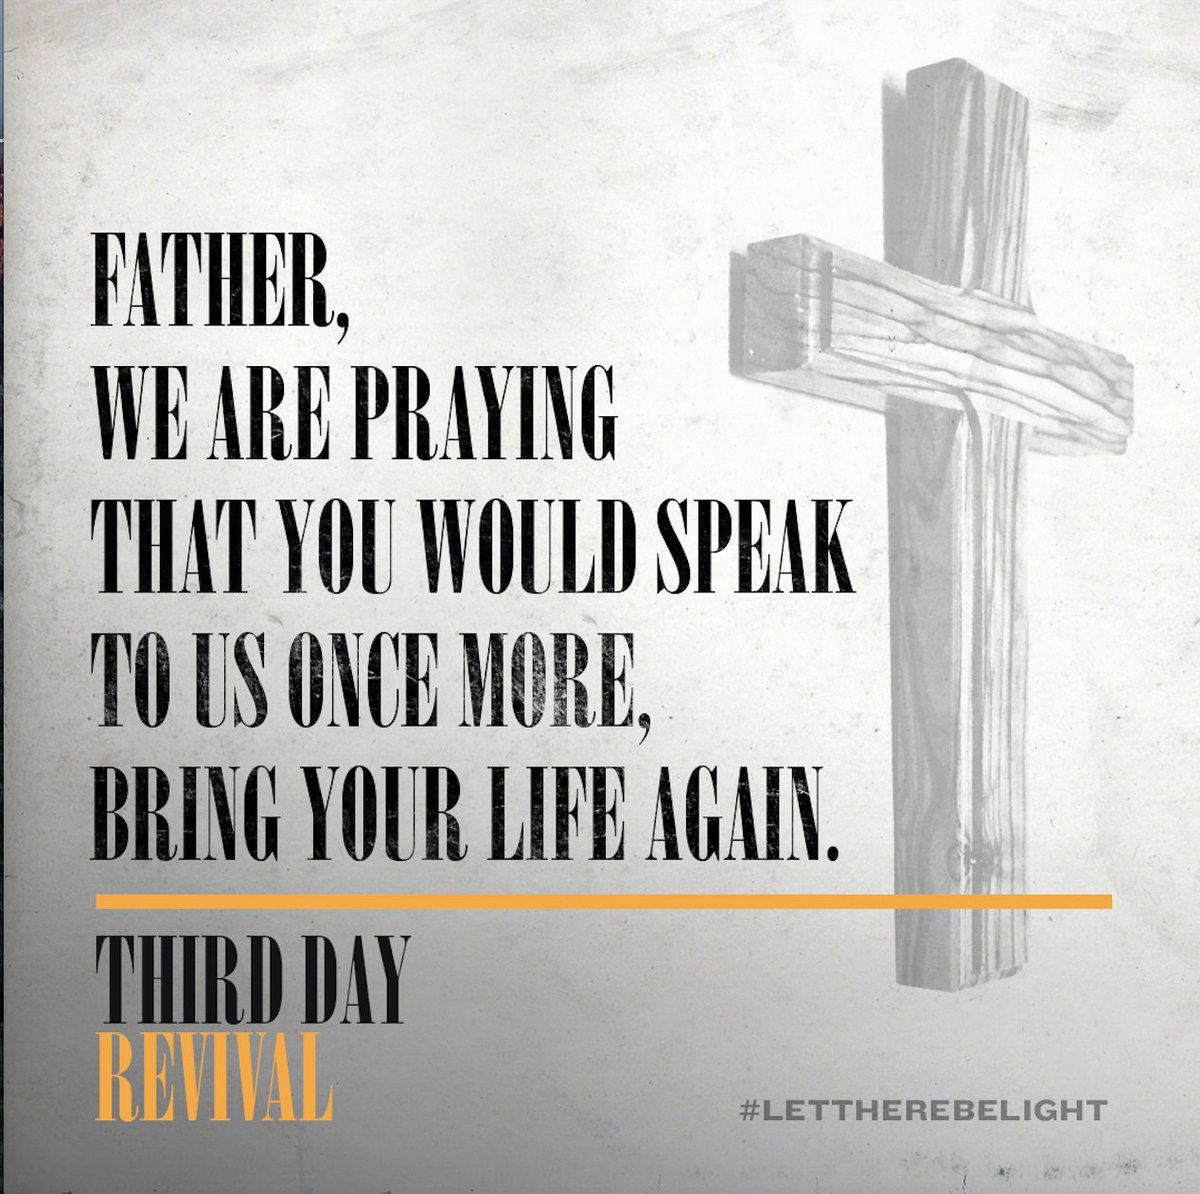 Third Day On Twitter Father We Are Praying That You Would Speak